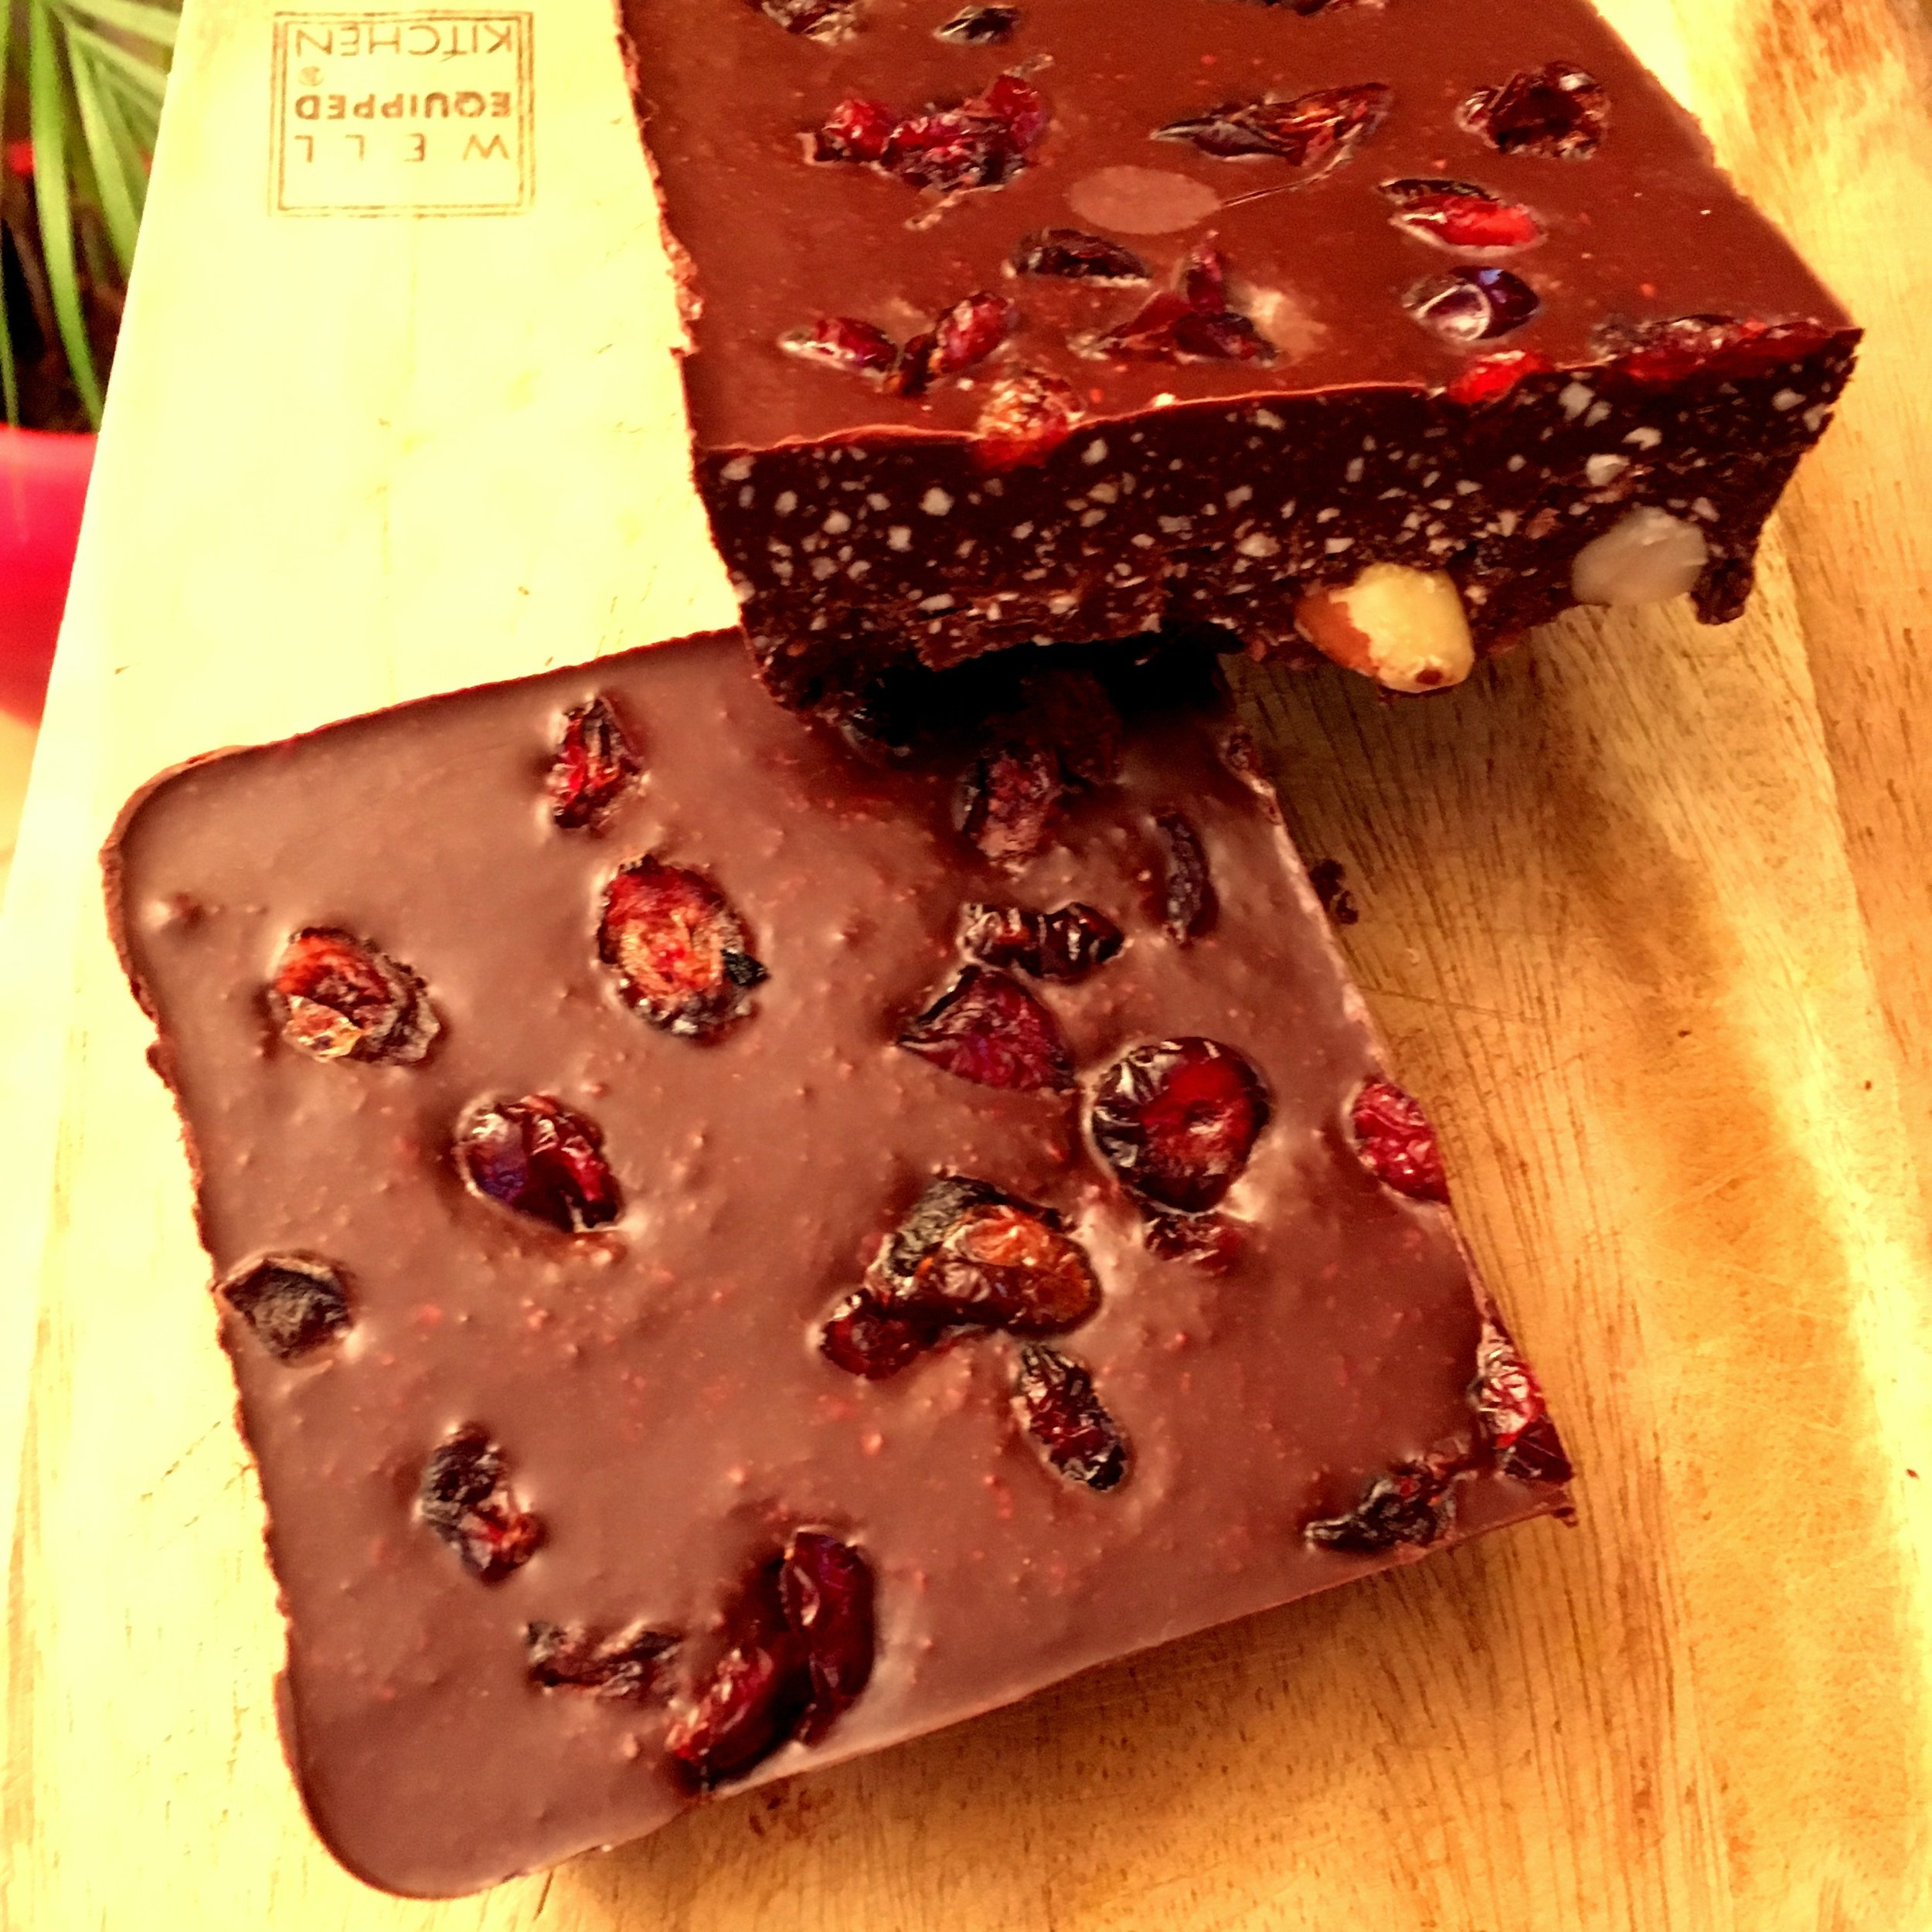 Brazil nut and cranberry chocolate -